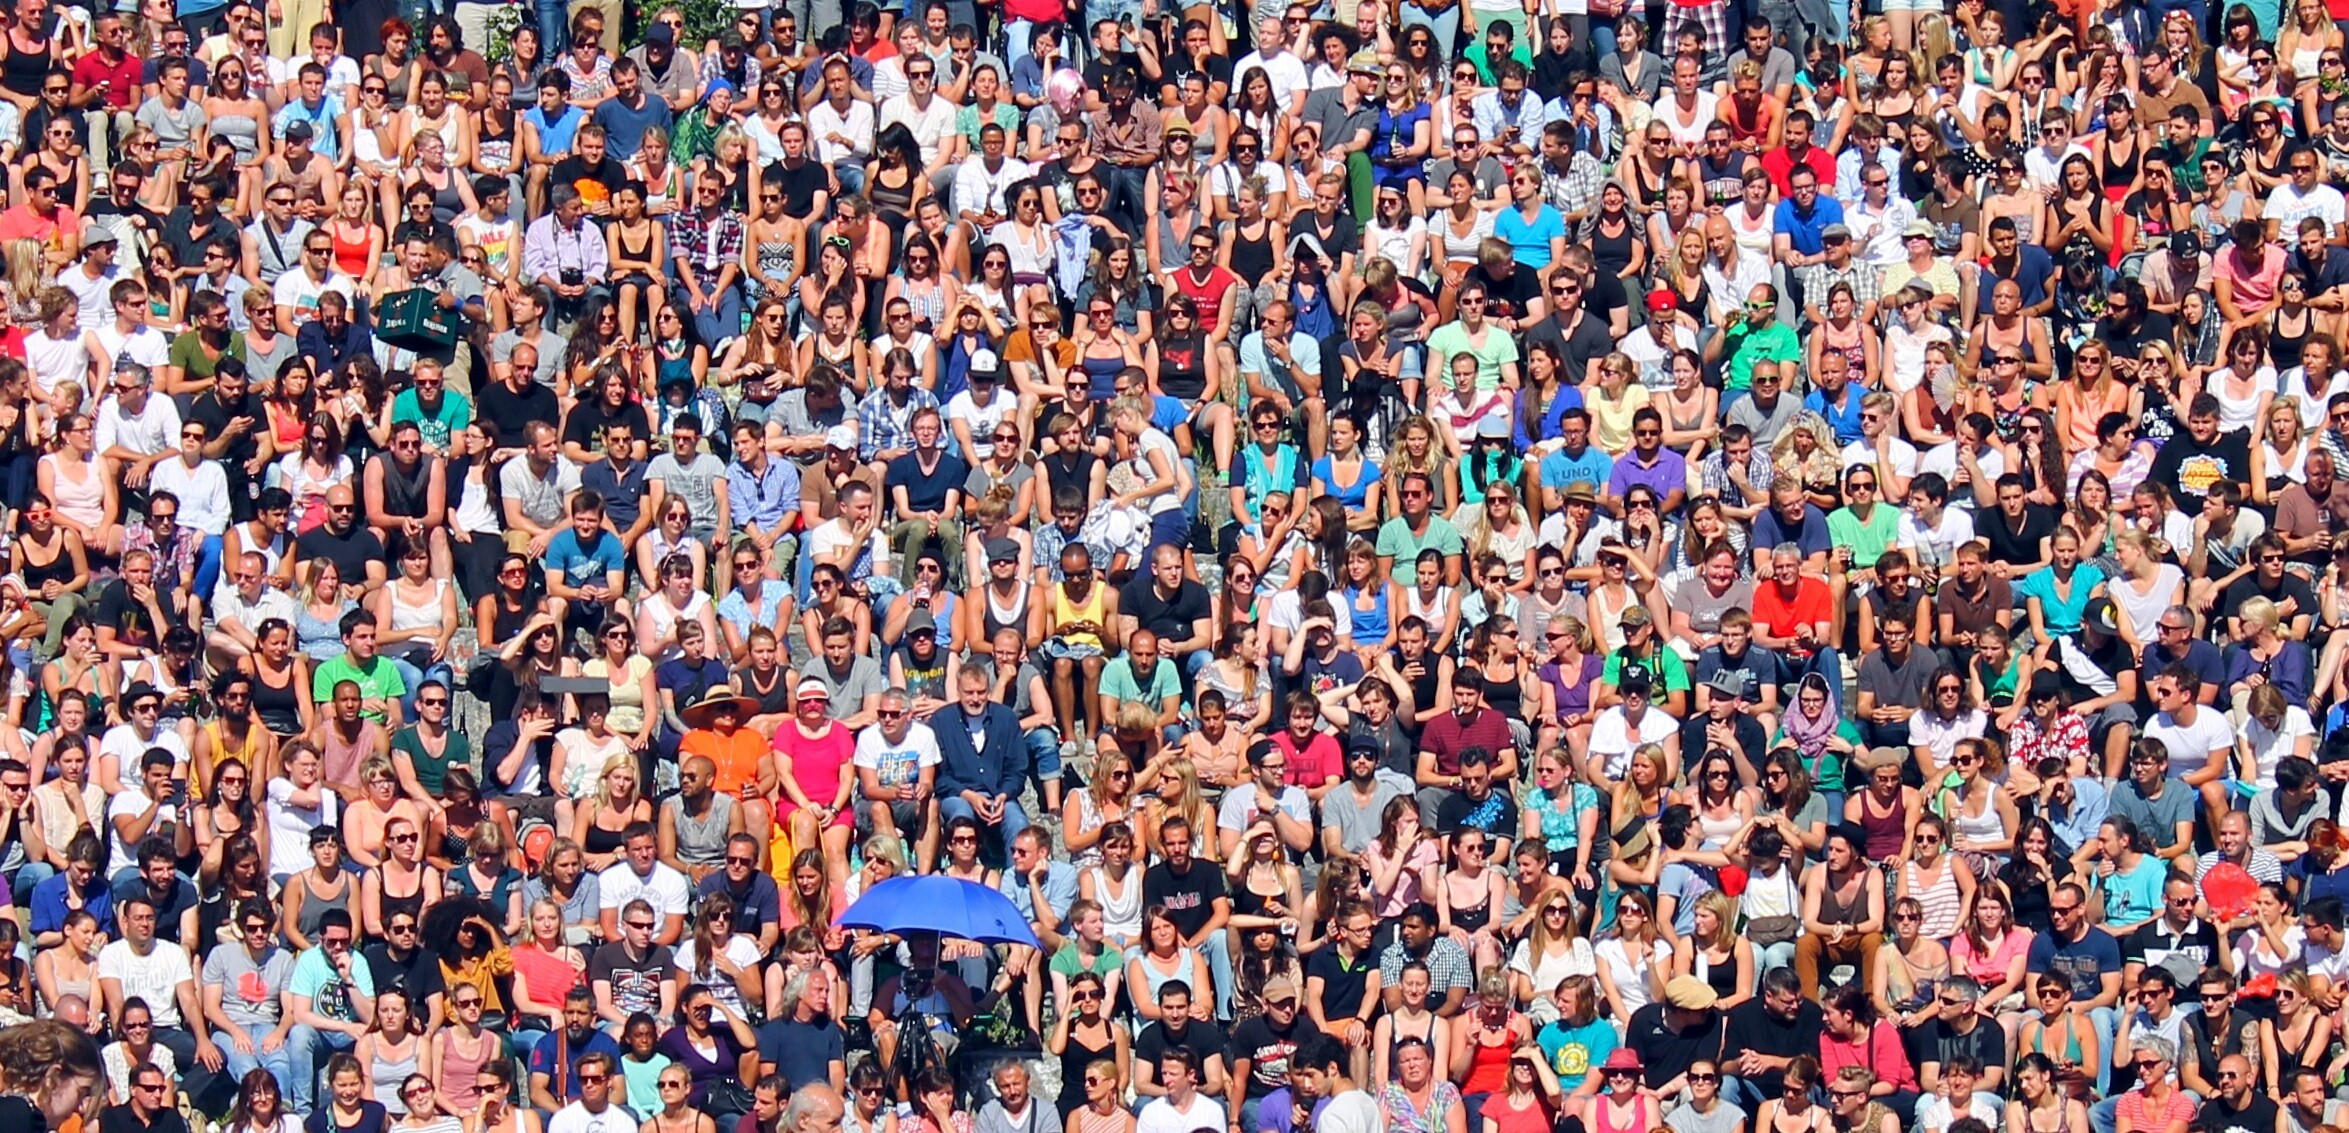 PEOPLE ( MAUERPARK IN BERLIN )